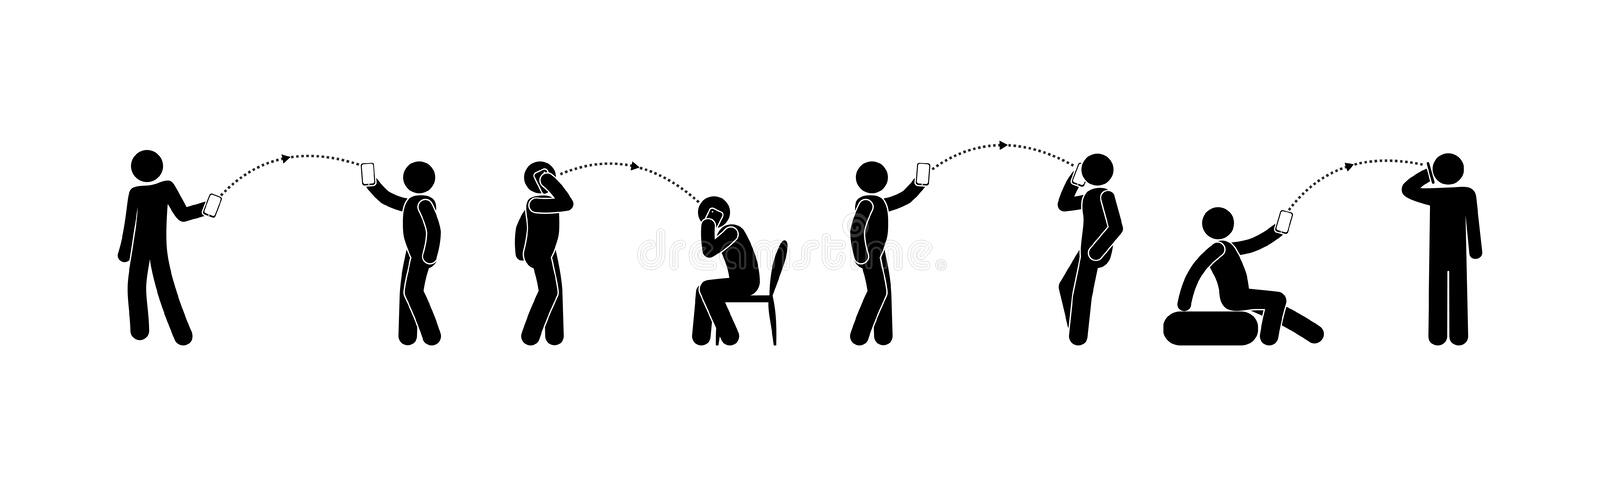 Stick figures a set of human with a cellphone. Man using phone or smartphone in different position and postures vector illustration